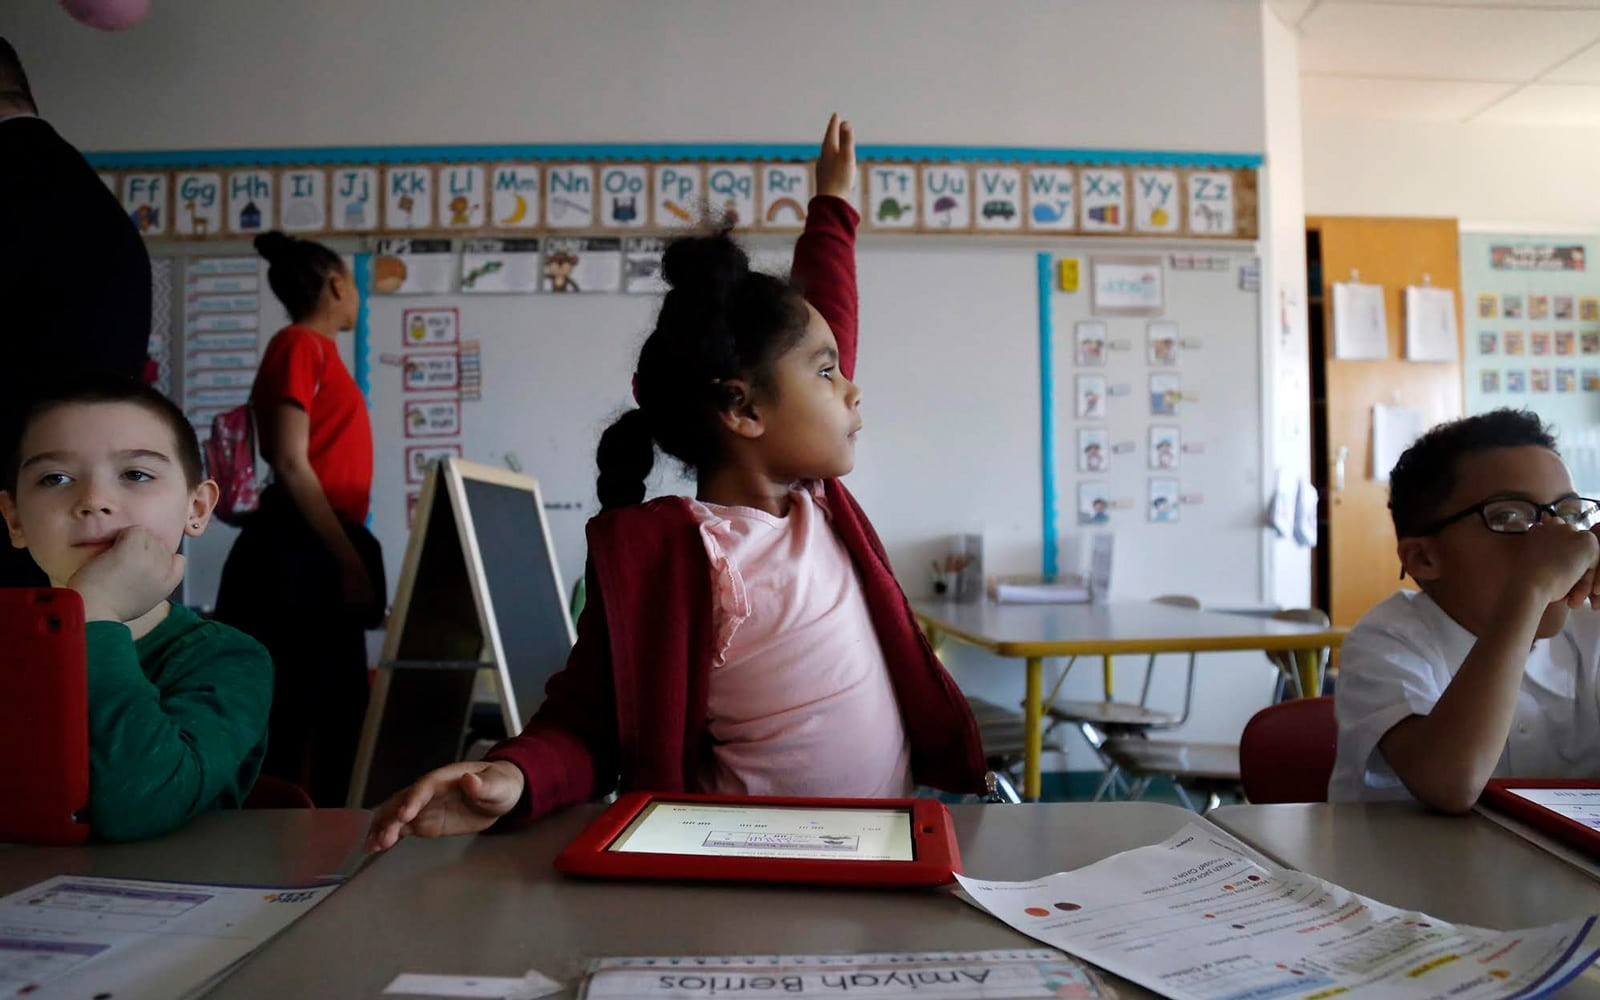 In March, Amiyah Berrios, then a first-grade student at Duquesne Elementary School, raises her hand during math class.